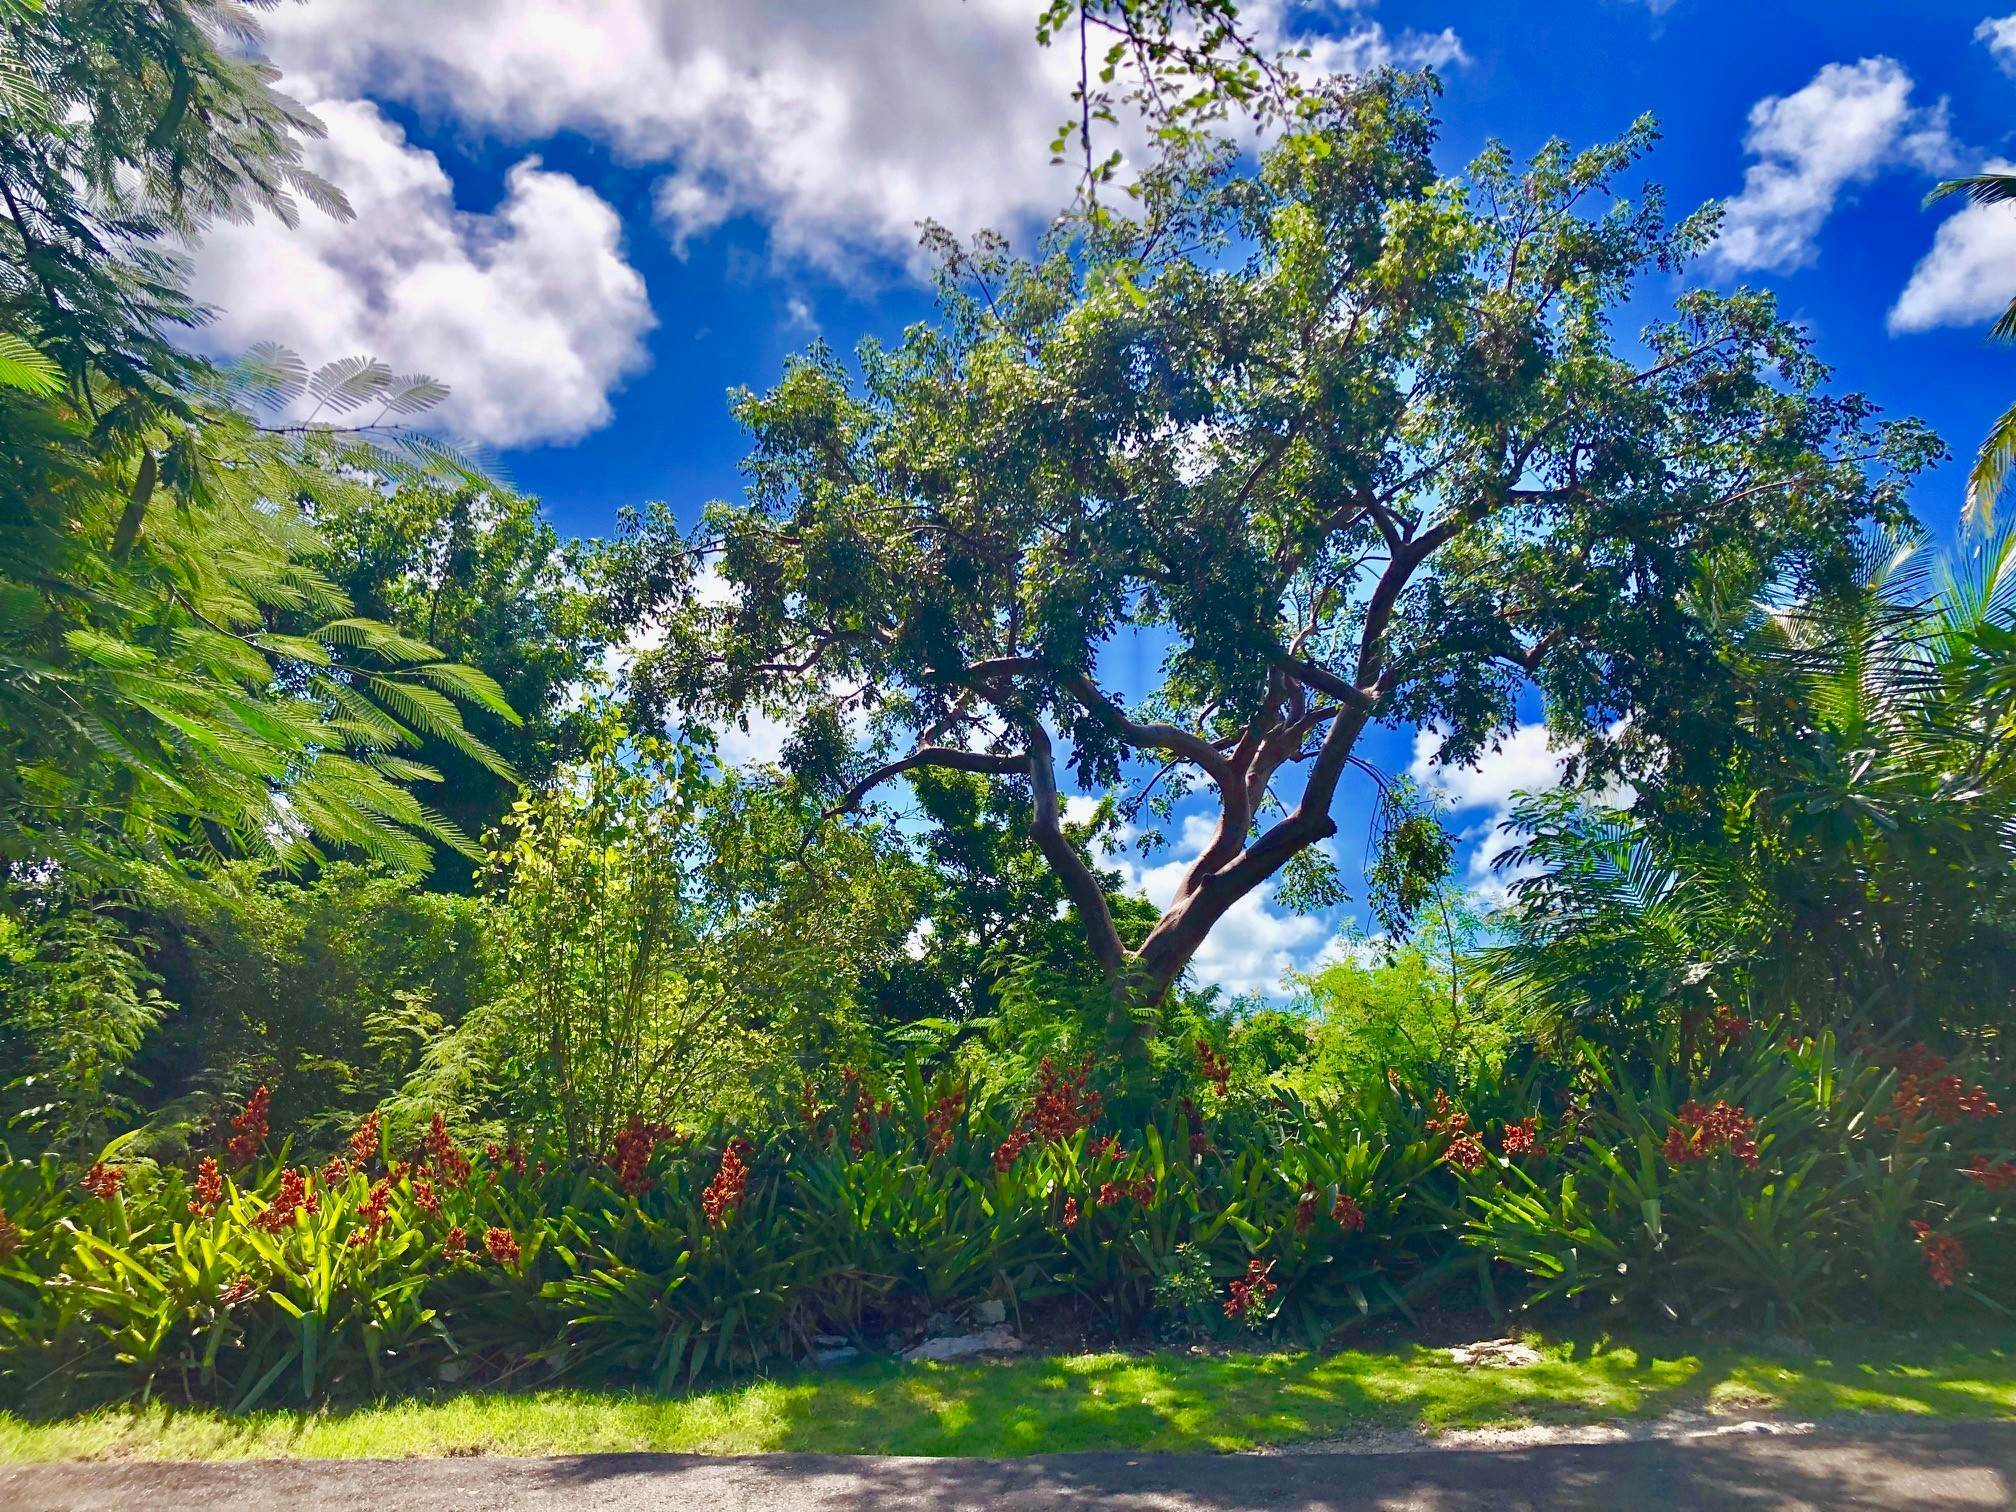 Land for Sale at Landscaped lot in gated quiet cul-de sac in Camperdown off Eastern Road - MLS 39125 Camperdown, Nassau And Paradise Island, Bahamas